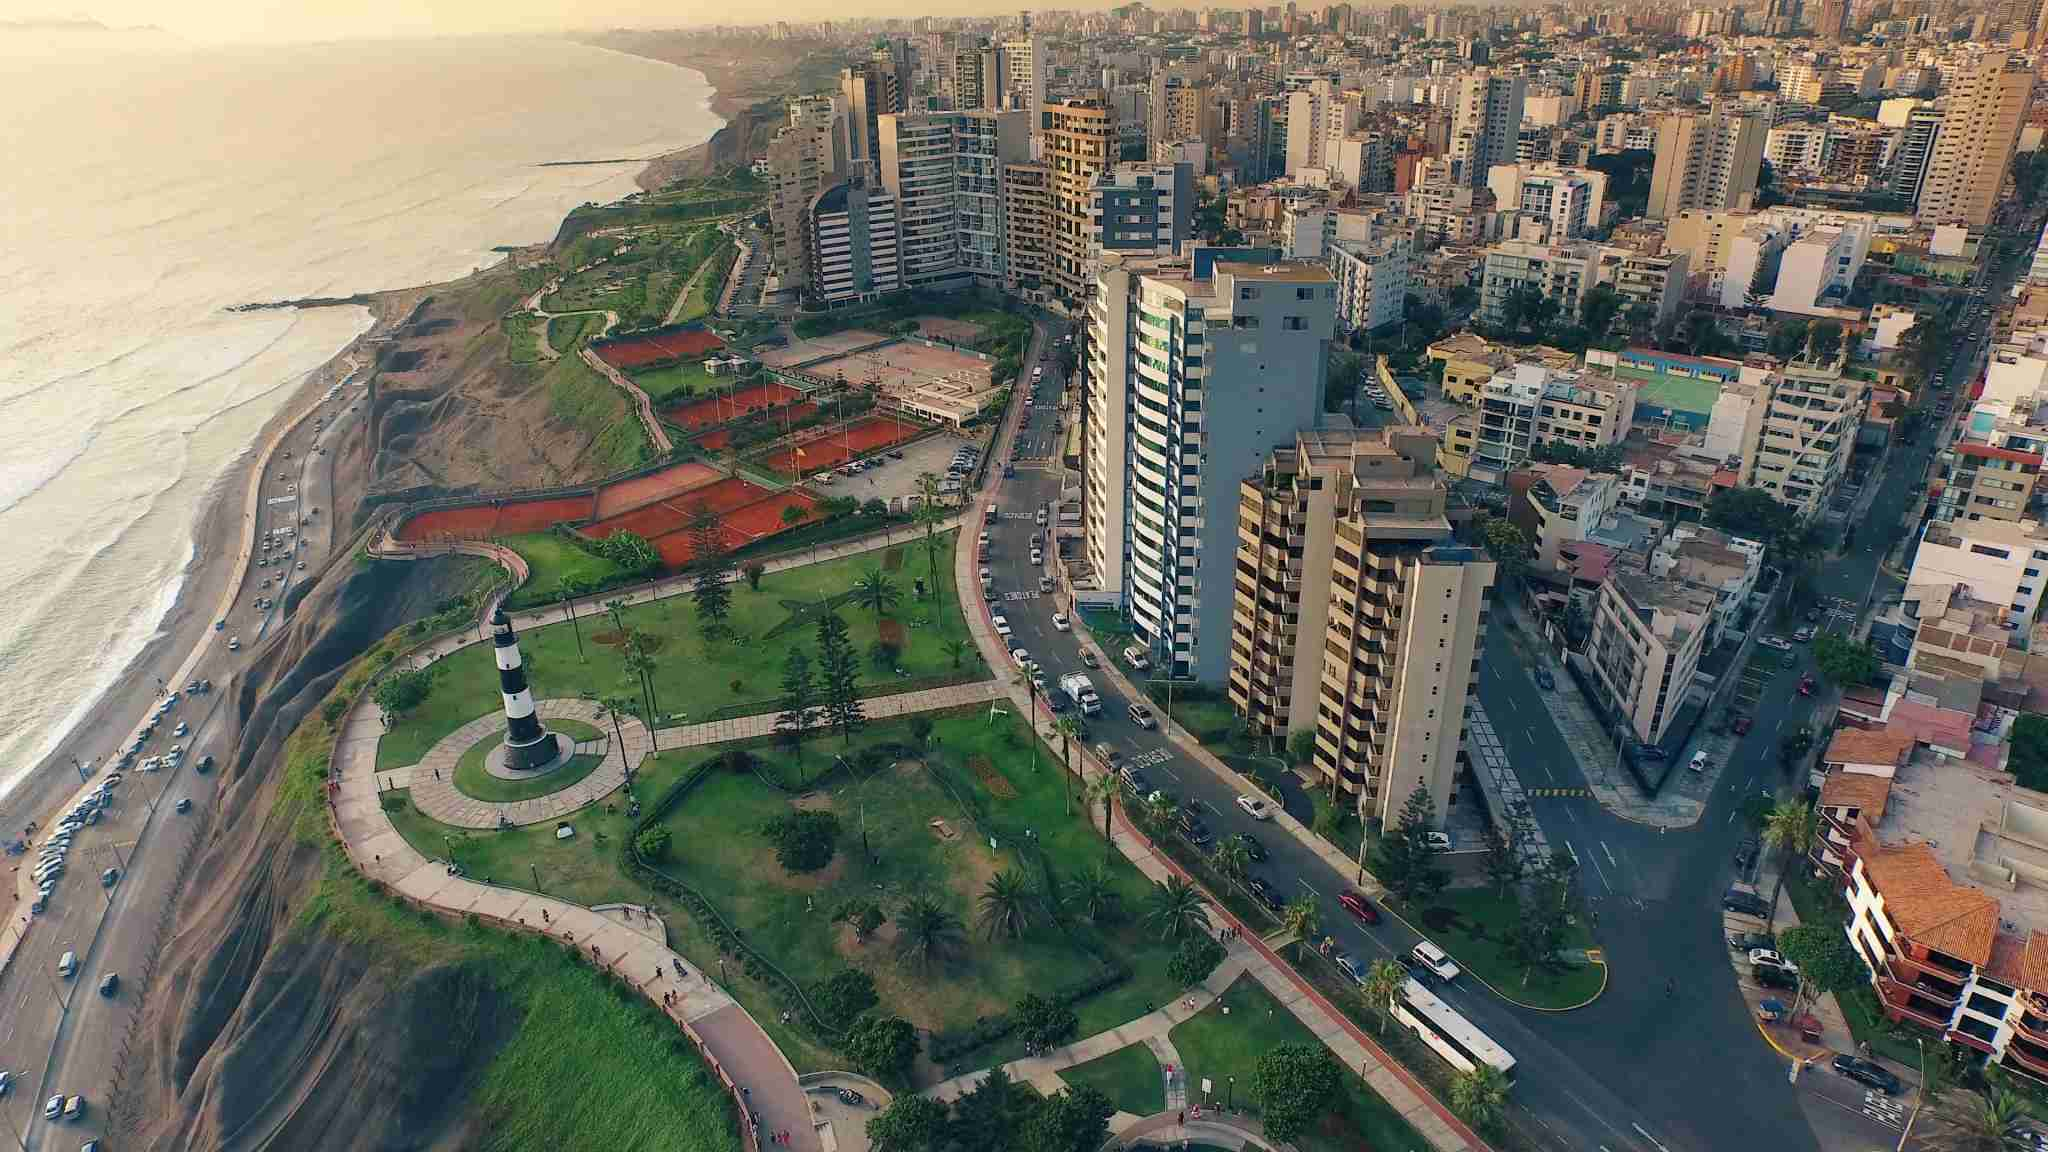 An aerial view of Lima